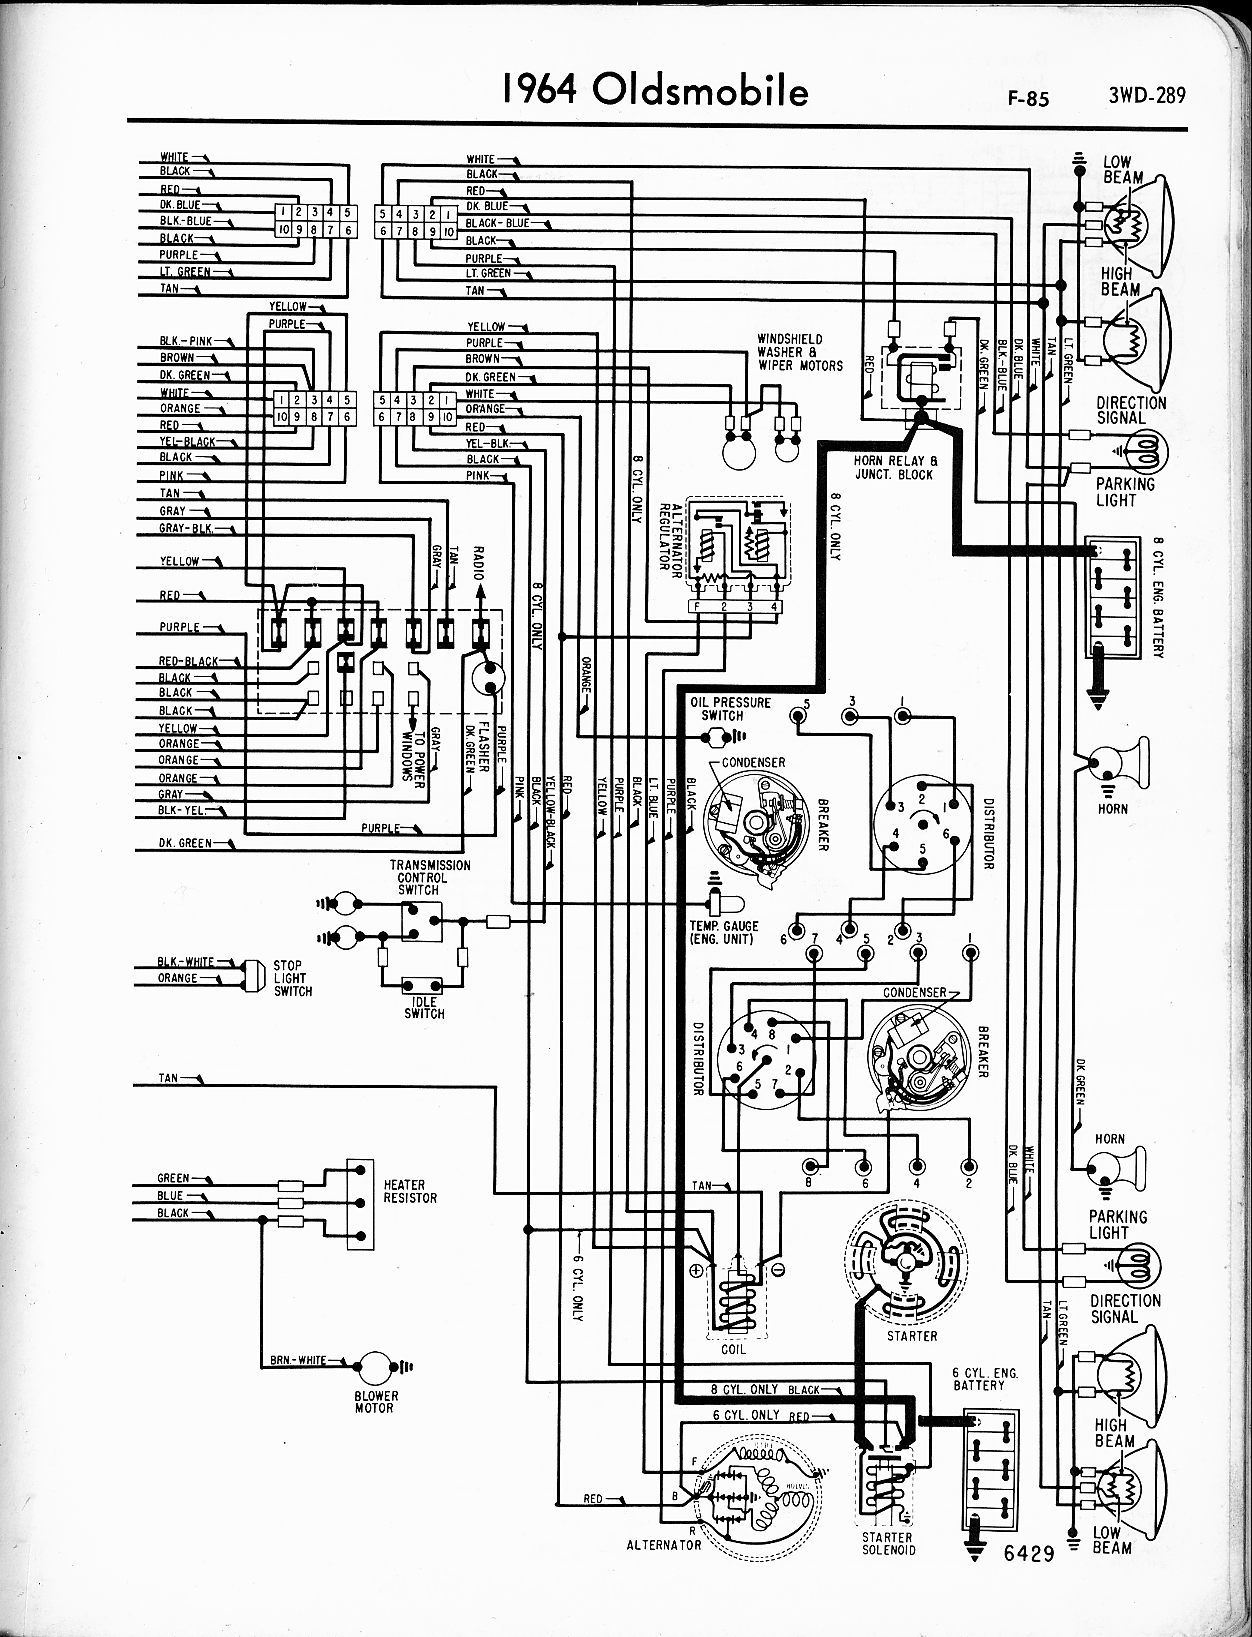 1996 Oldsmobile Cutlass Supreme Wiring Diagram